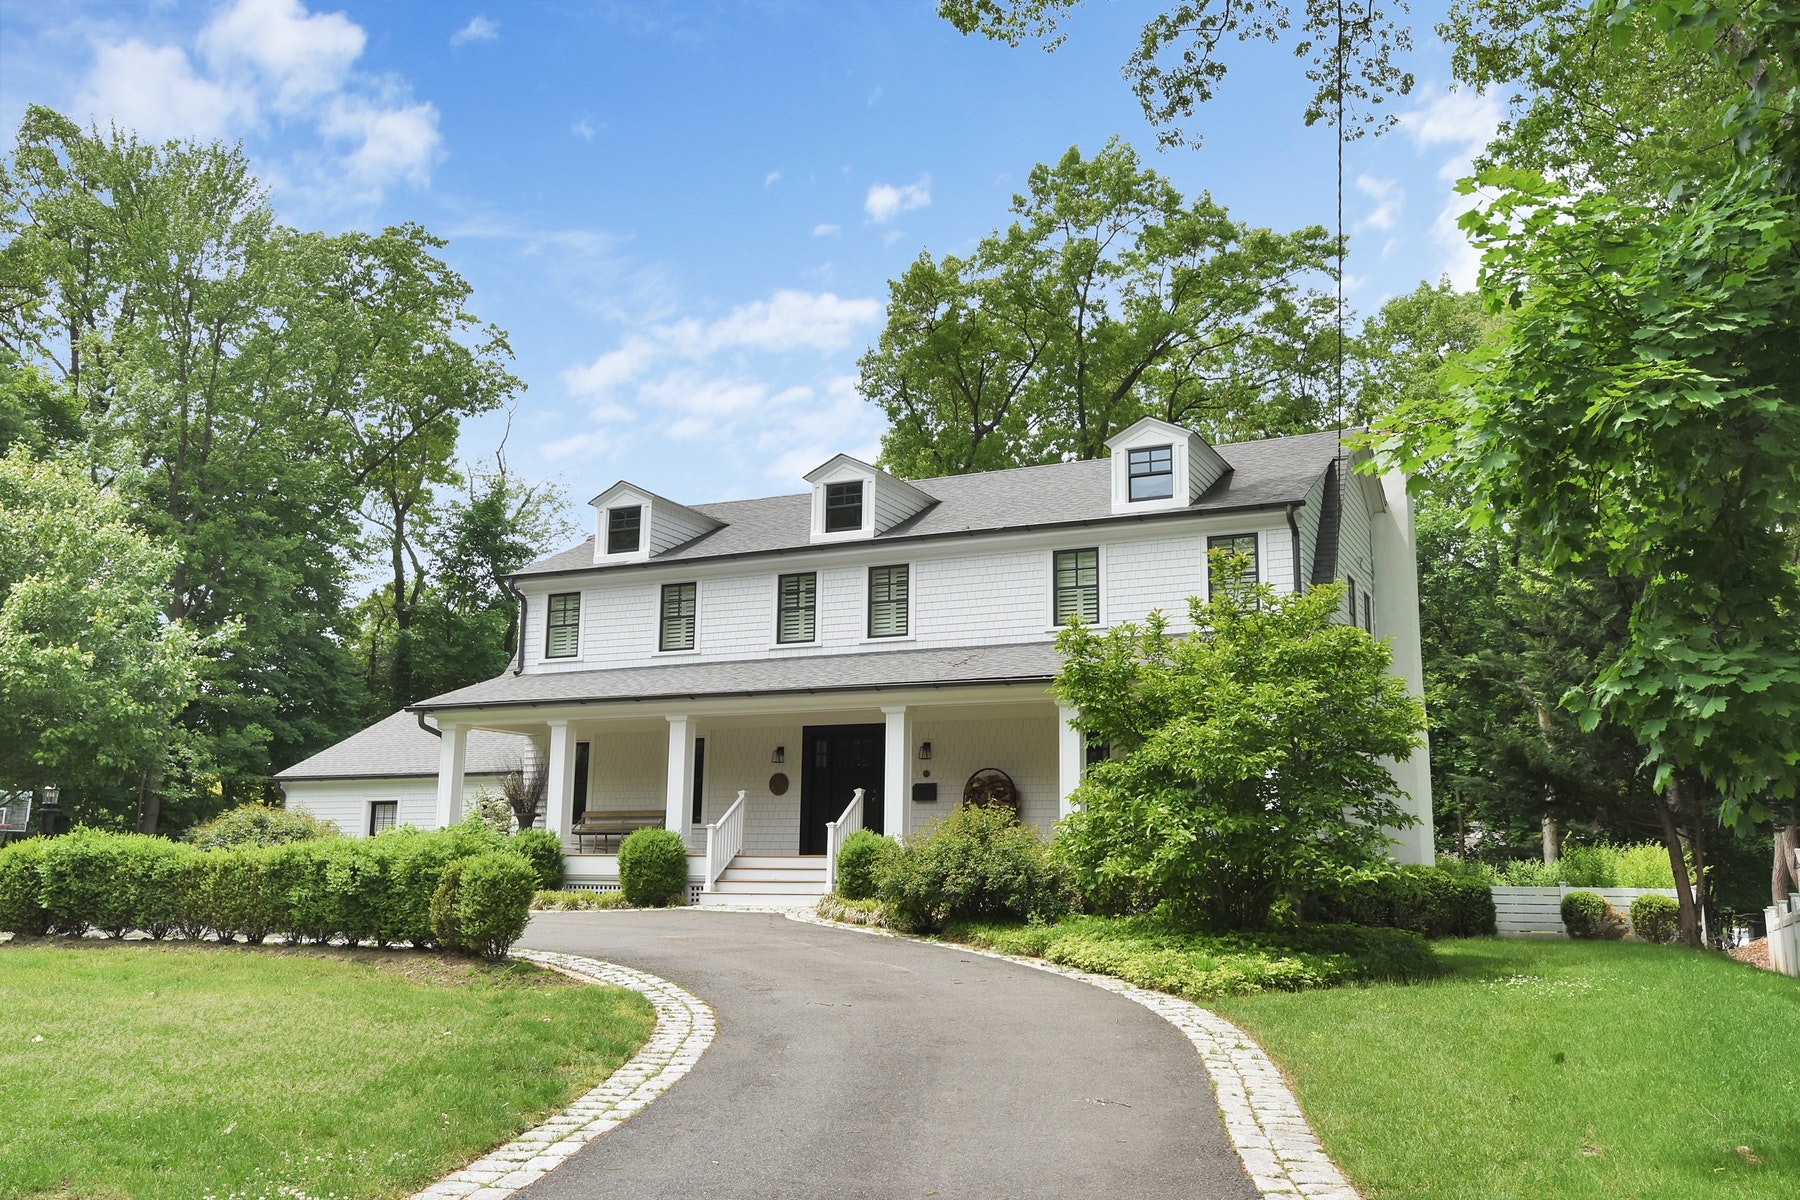 Single Family Homes for Sale at One of a Kind Classic Center Hall Colonial 6 St Albans Pl Haworth, New Jersey 07641 United States